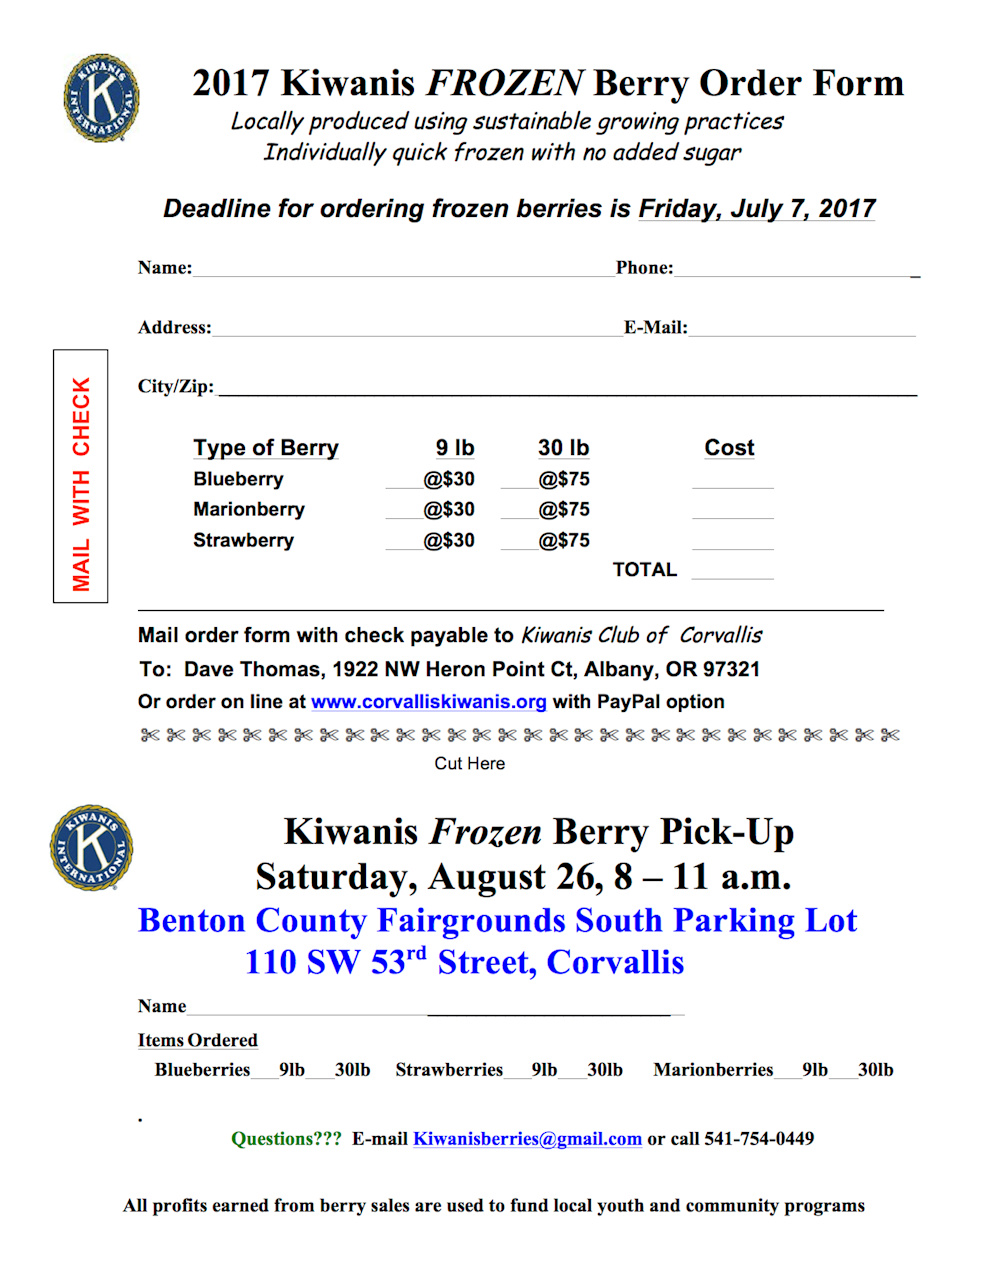 Berry Sale Order Form To Mail In